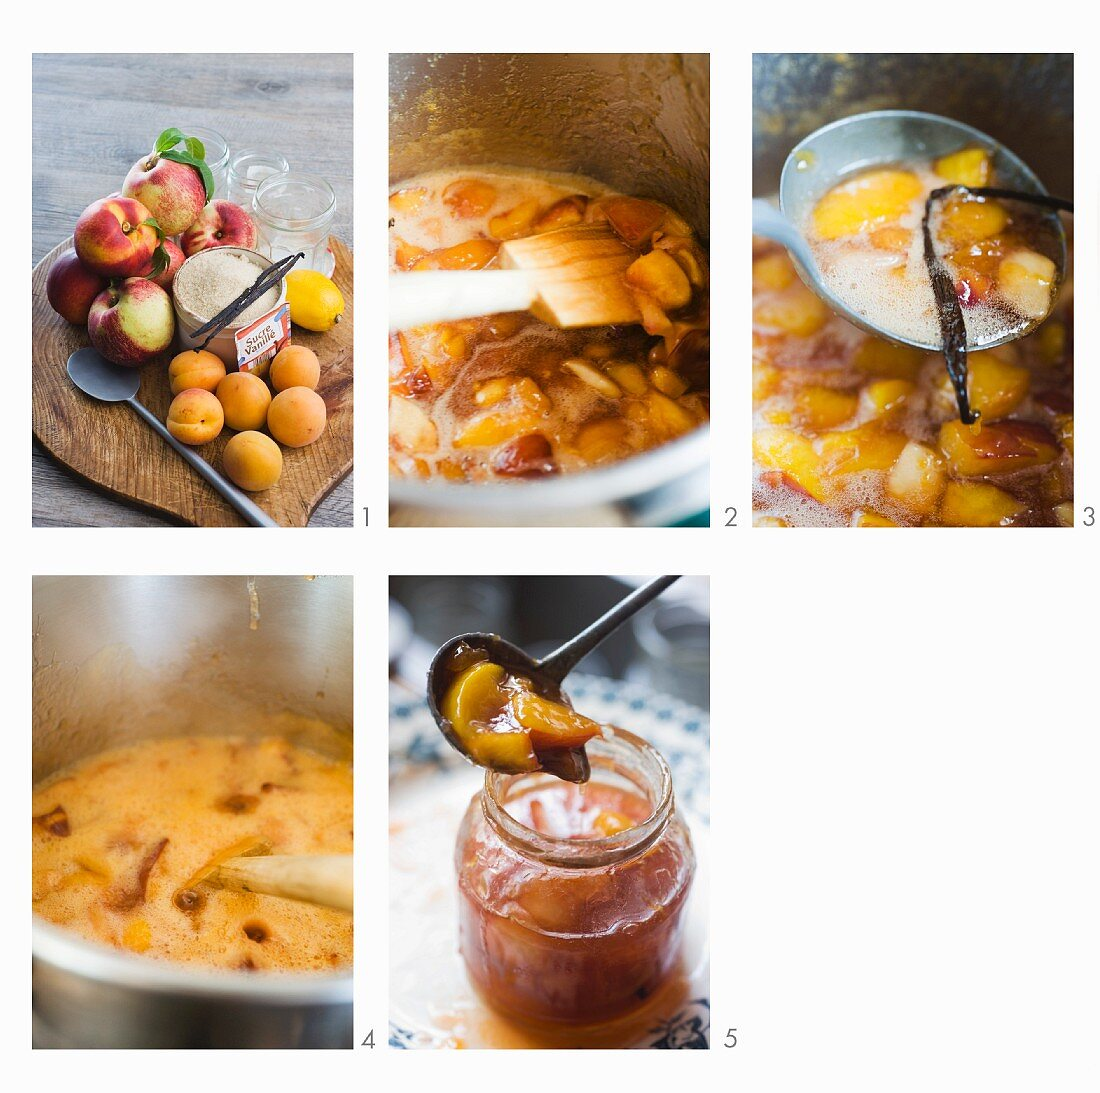 Apricot and nectarine jam being made